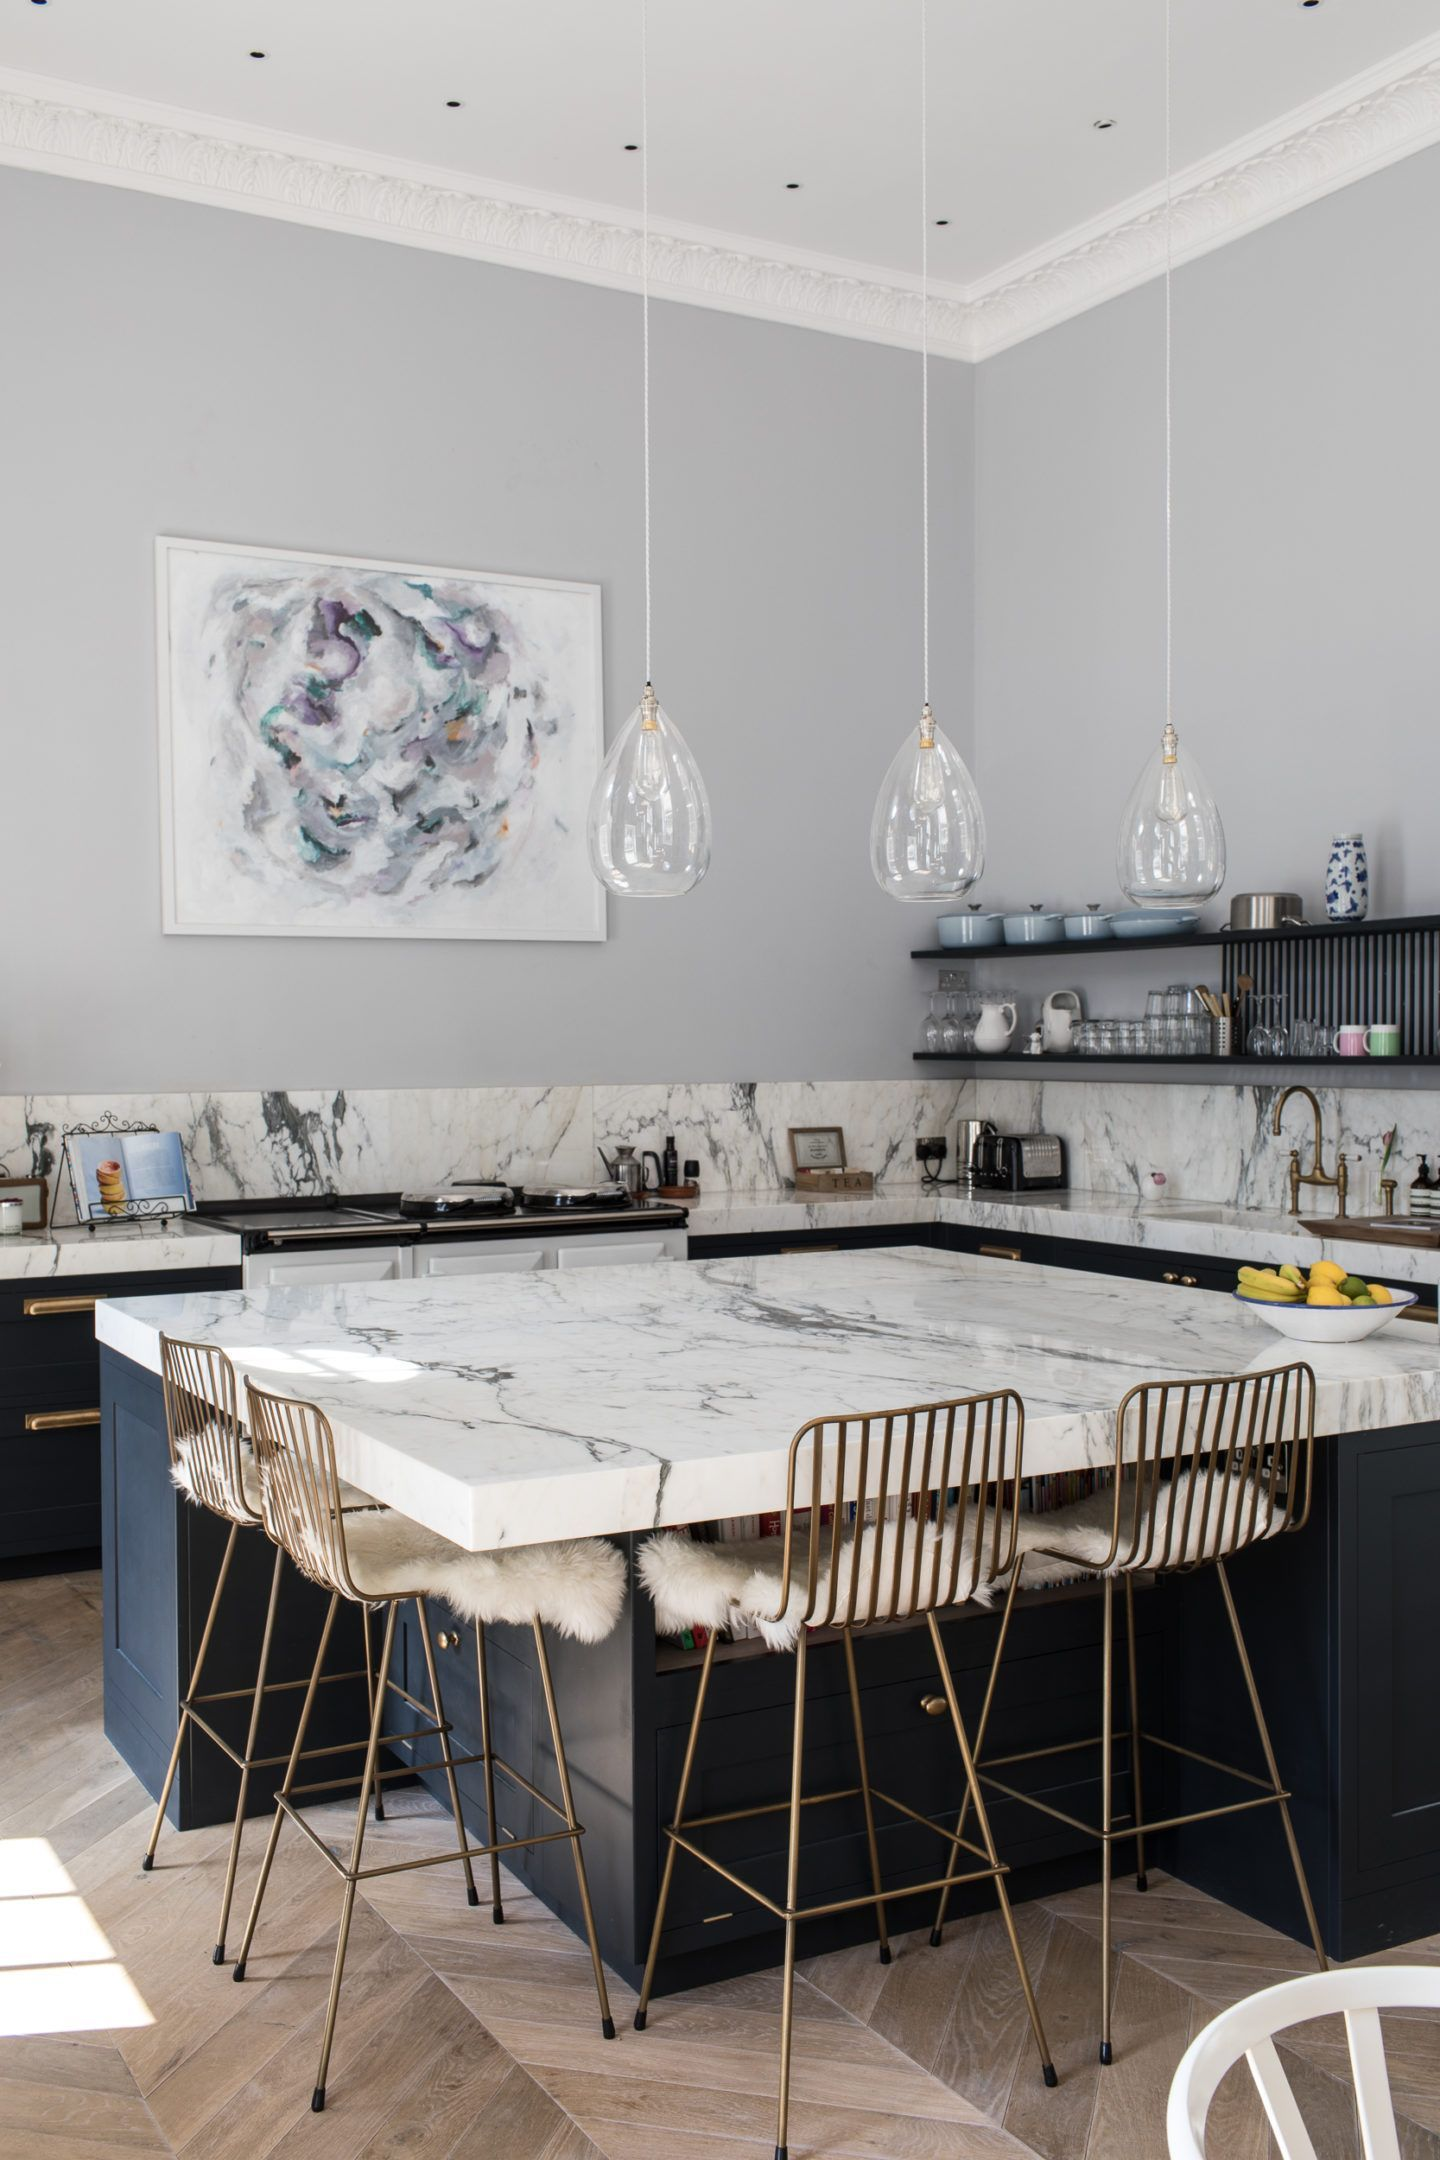 Marble kitchen island brass chairs sheepskins airy pendants all good